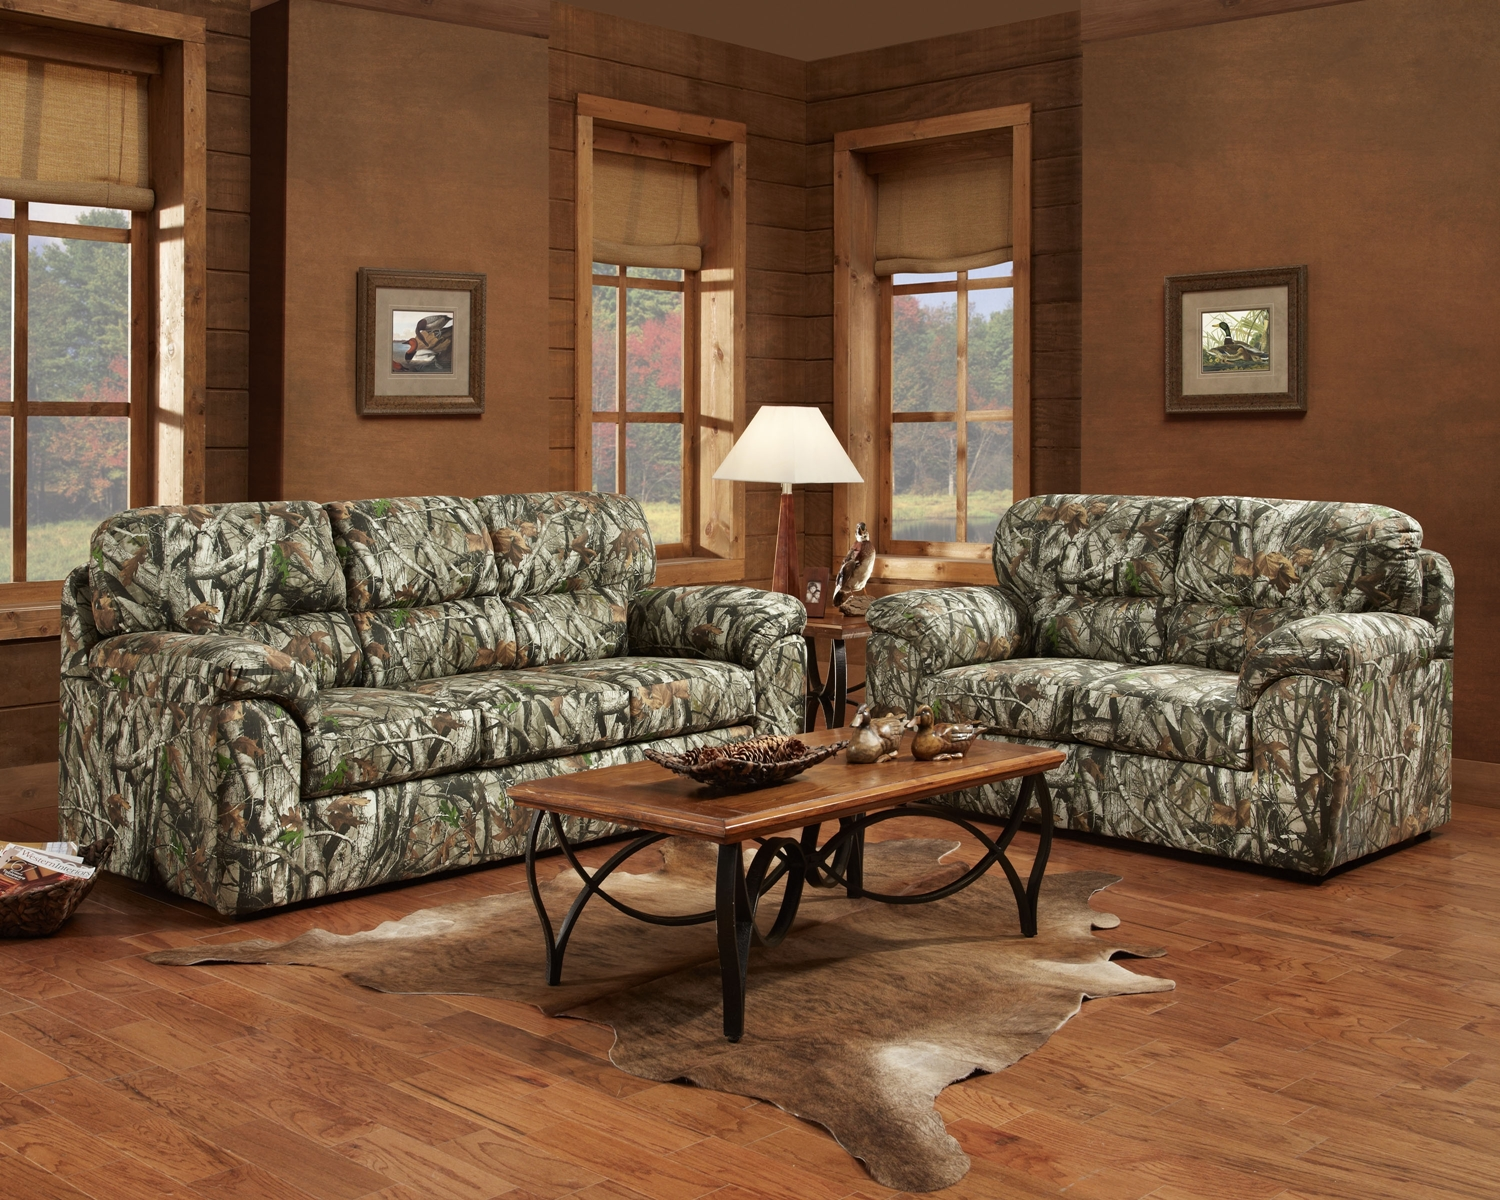 mossy oak camouflage sofa loveseat hunting lodge living room furniture set ebay